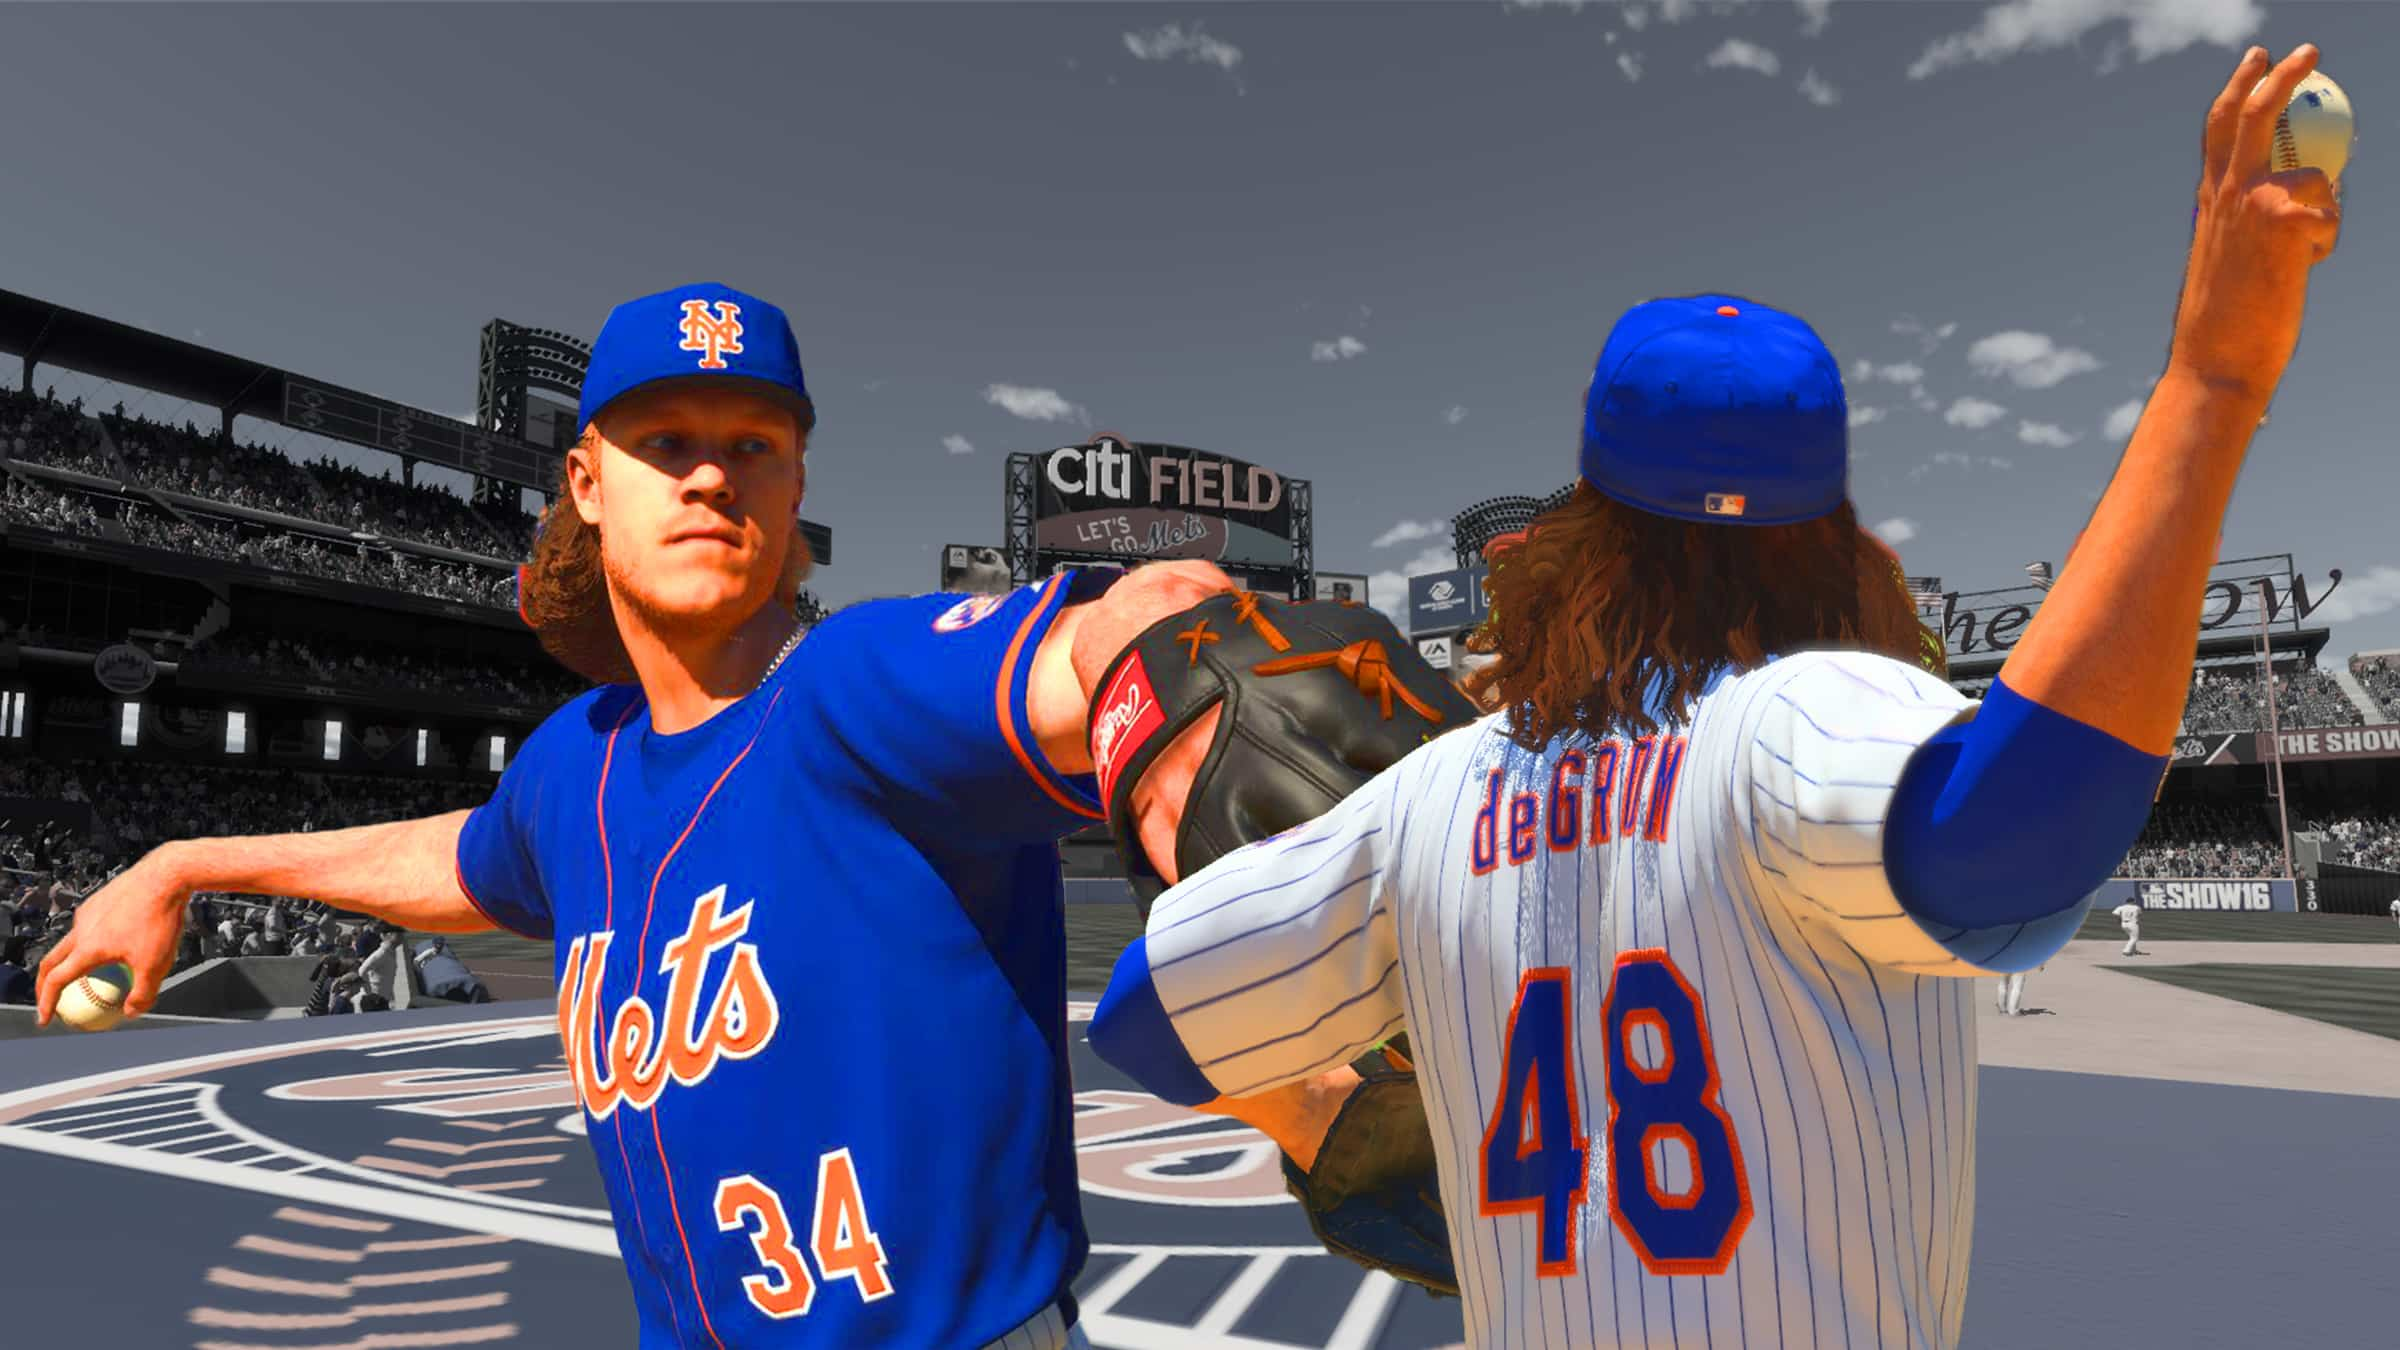 Mets_mlb_the_show